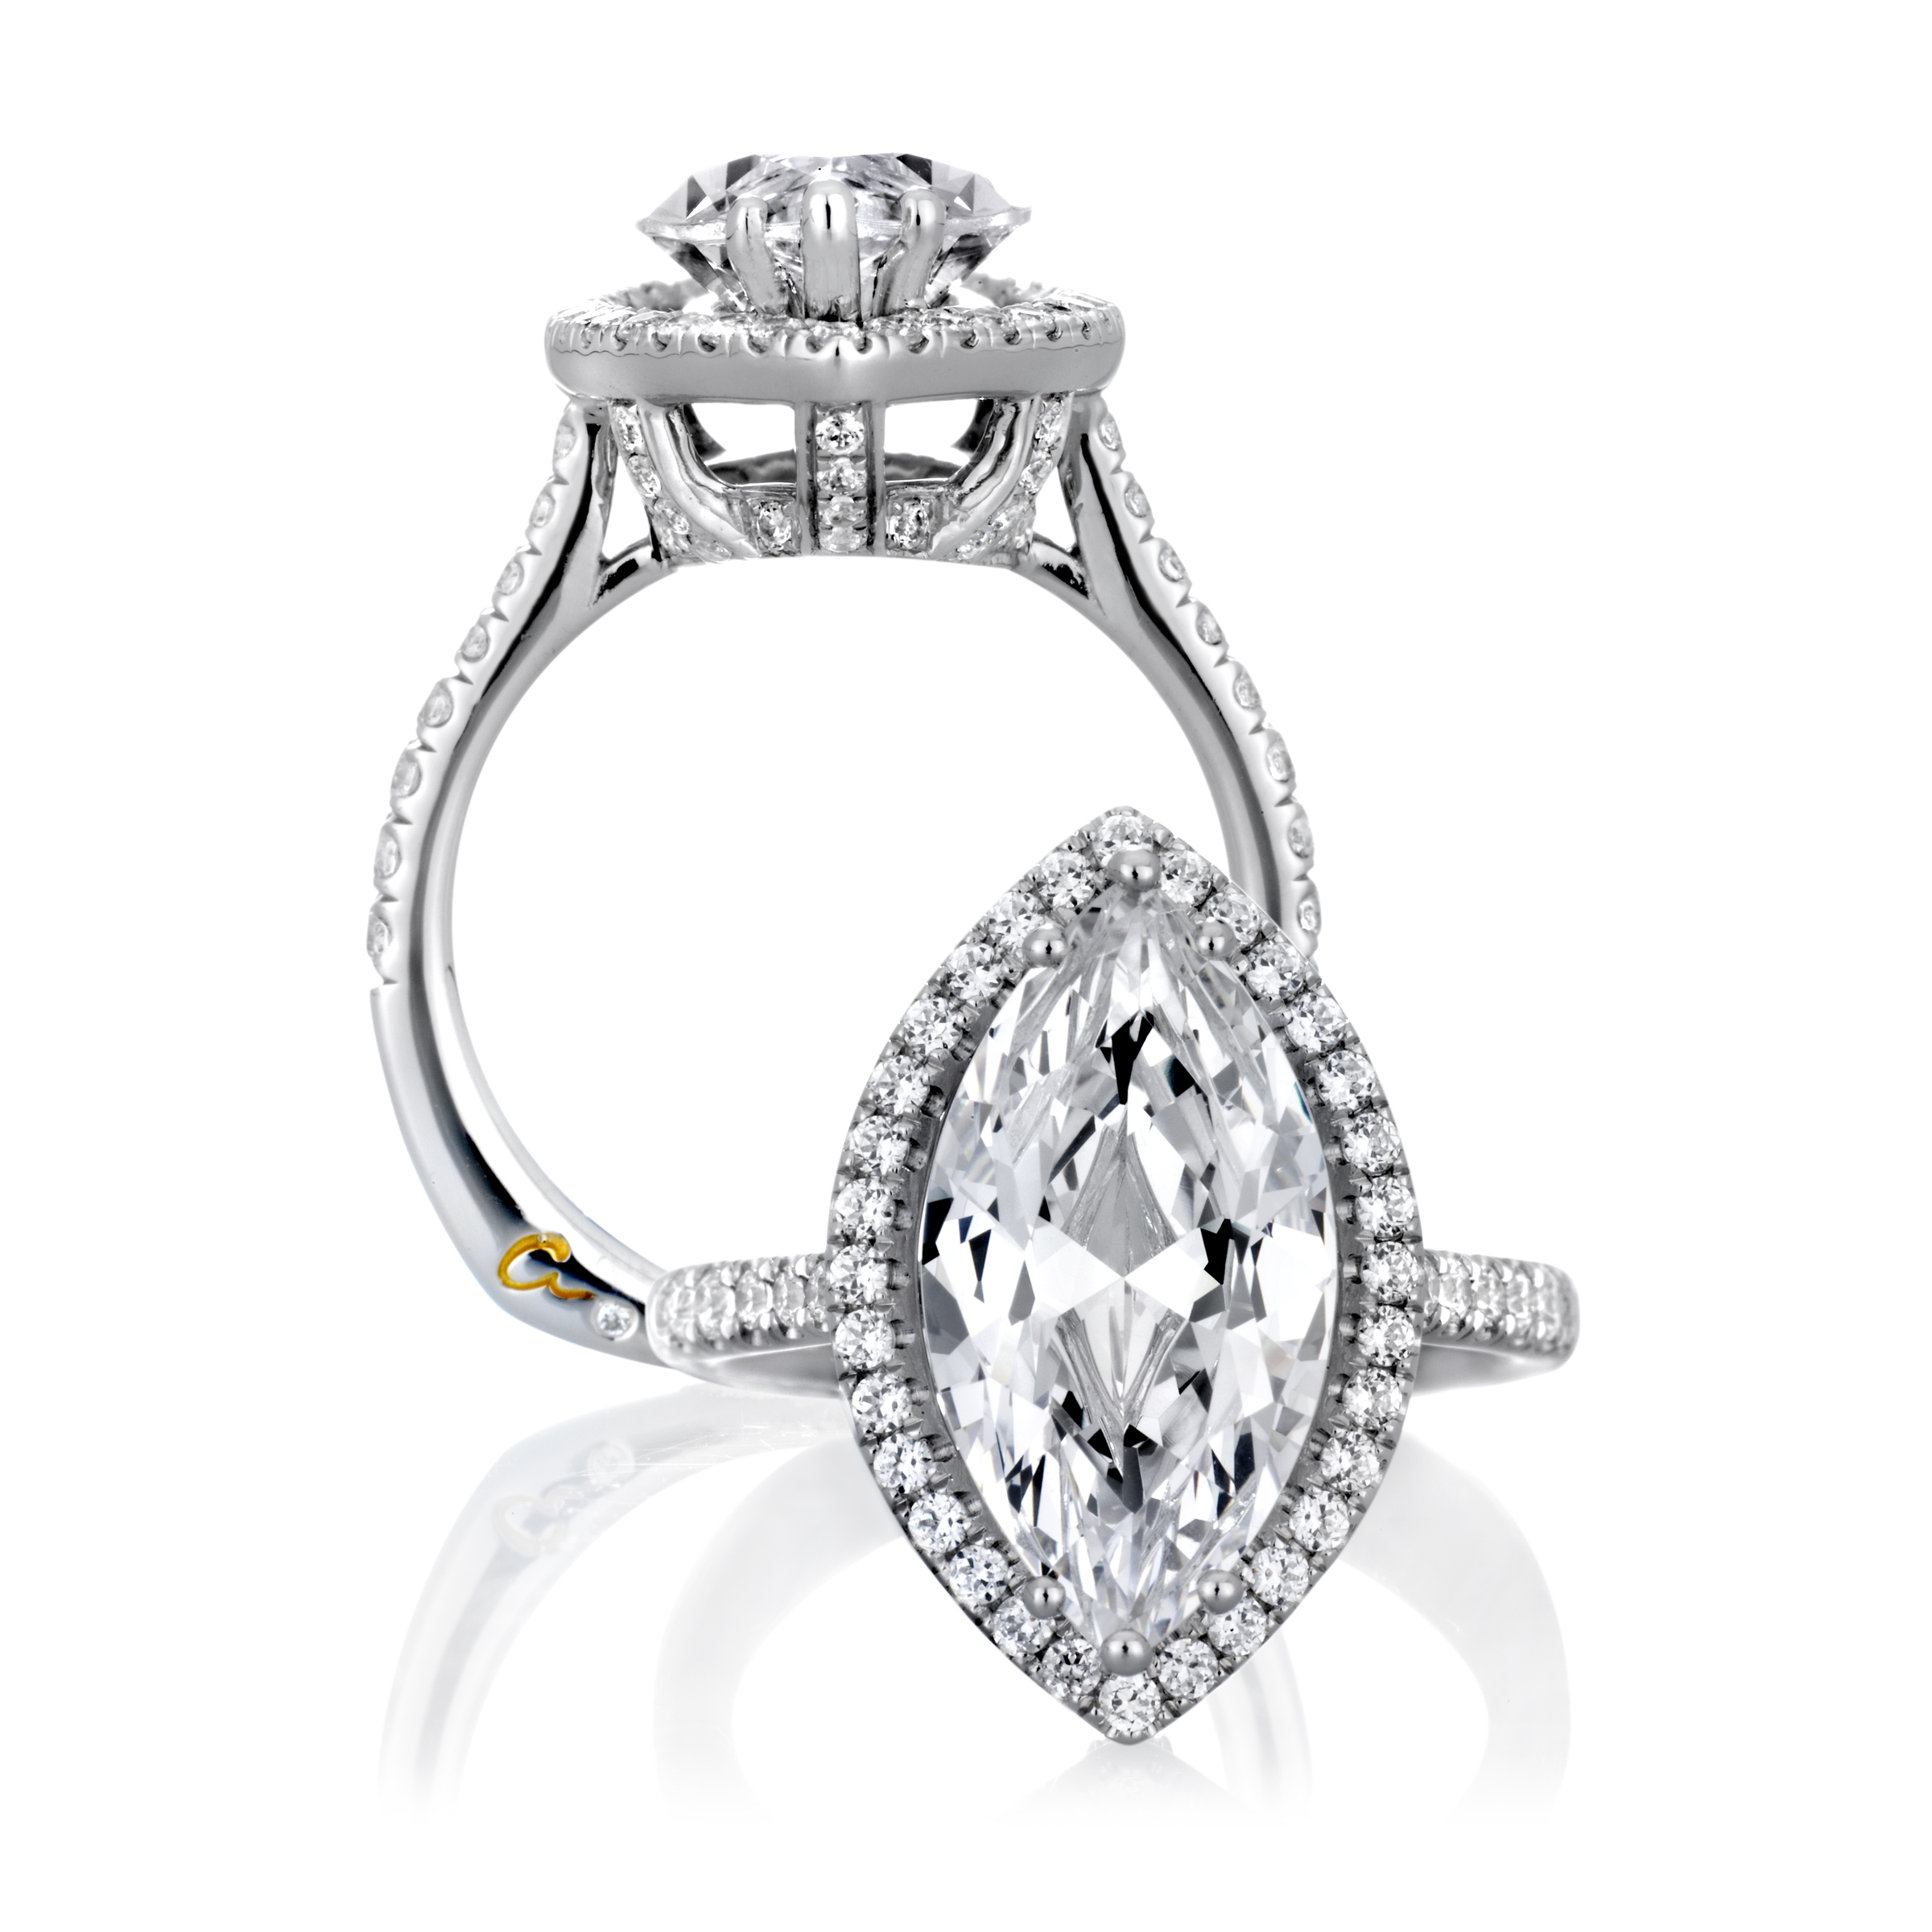 ring fraser rings diamond wedding pin white hart jewellers pear cut carat gold